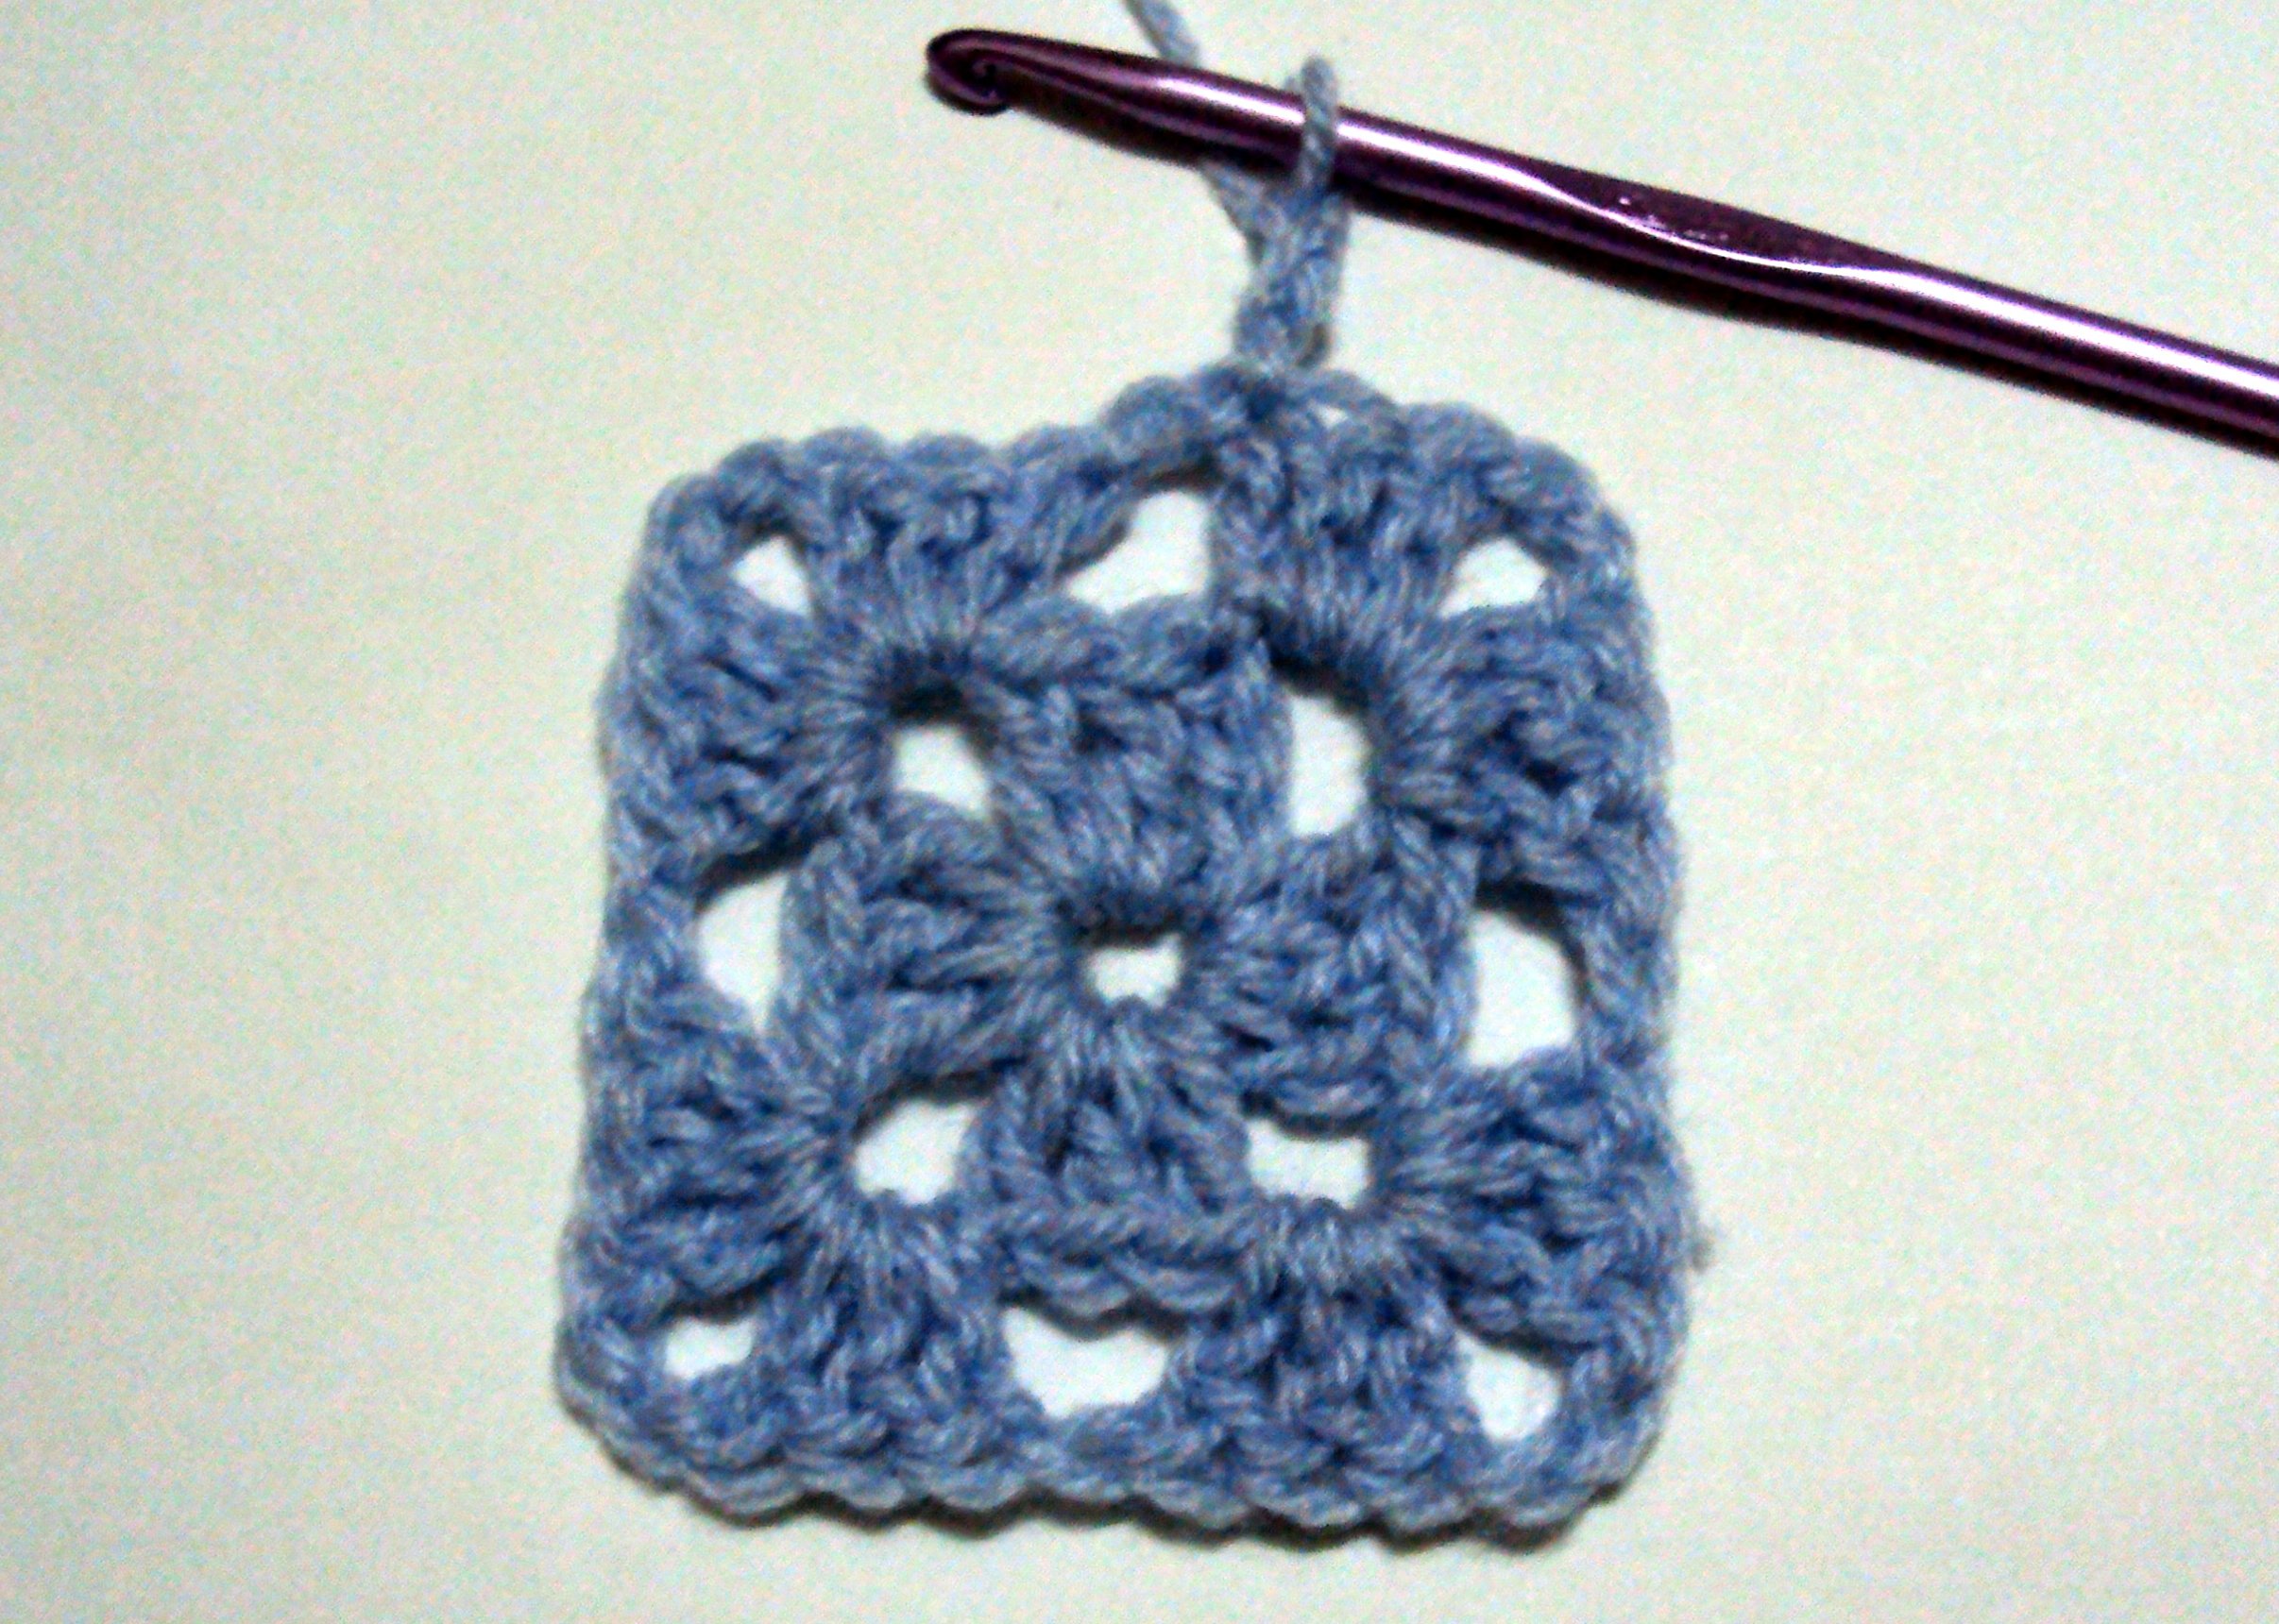 ... Crochet: Granny Squares (Step-by-Step) - Crochet Patterns, Tutorials